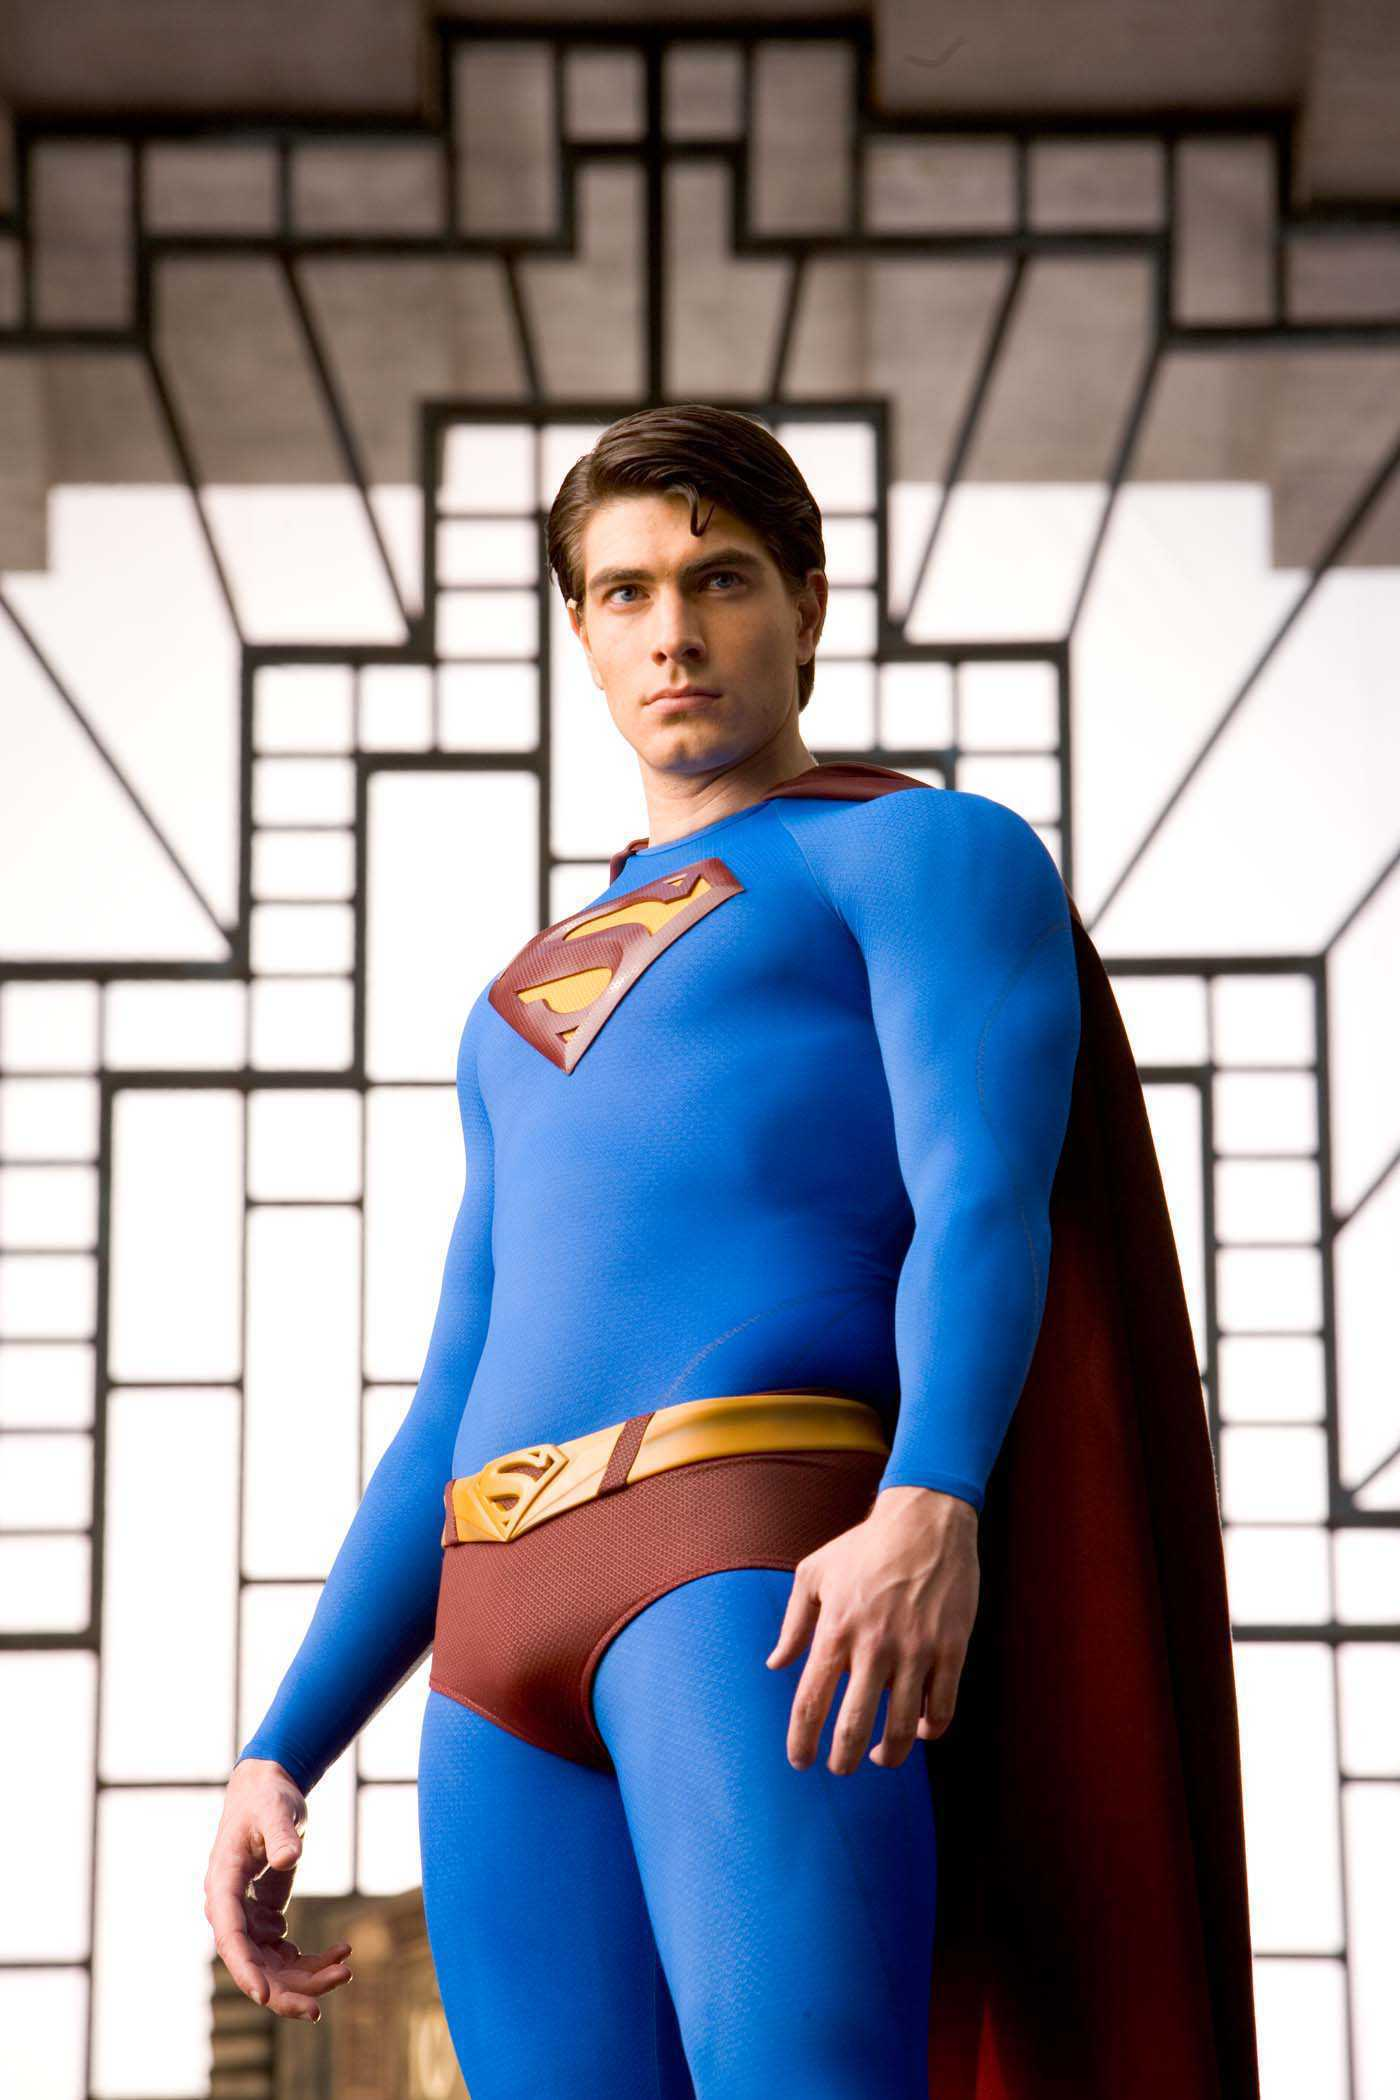 http://images2.fanpop.com/image/photos/8600000/Superman-Returns-superman-returns-8693507-1400-2100.jpg